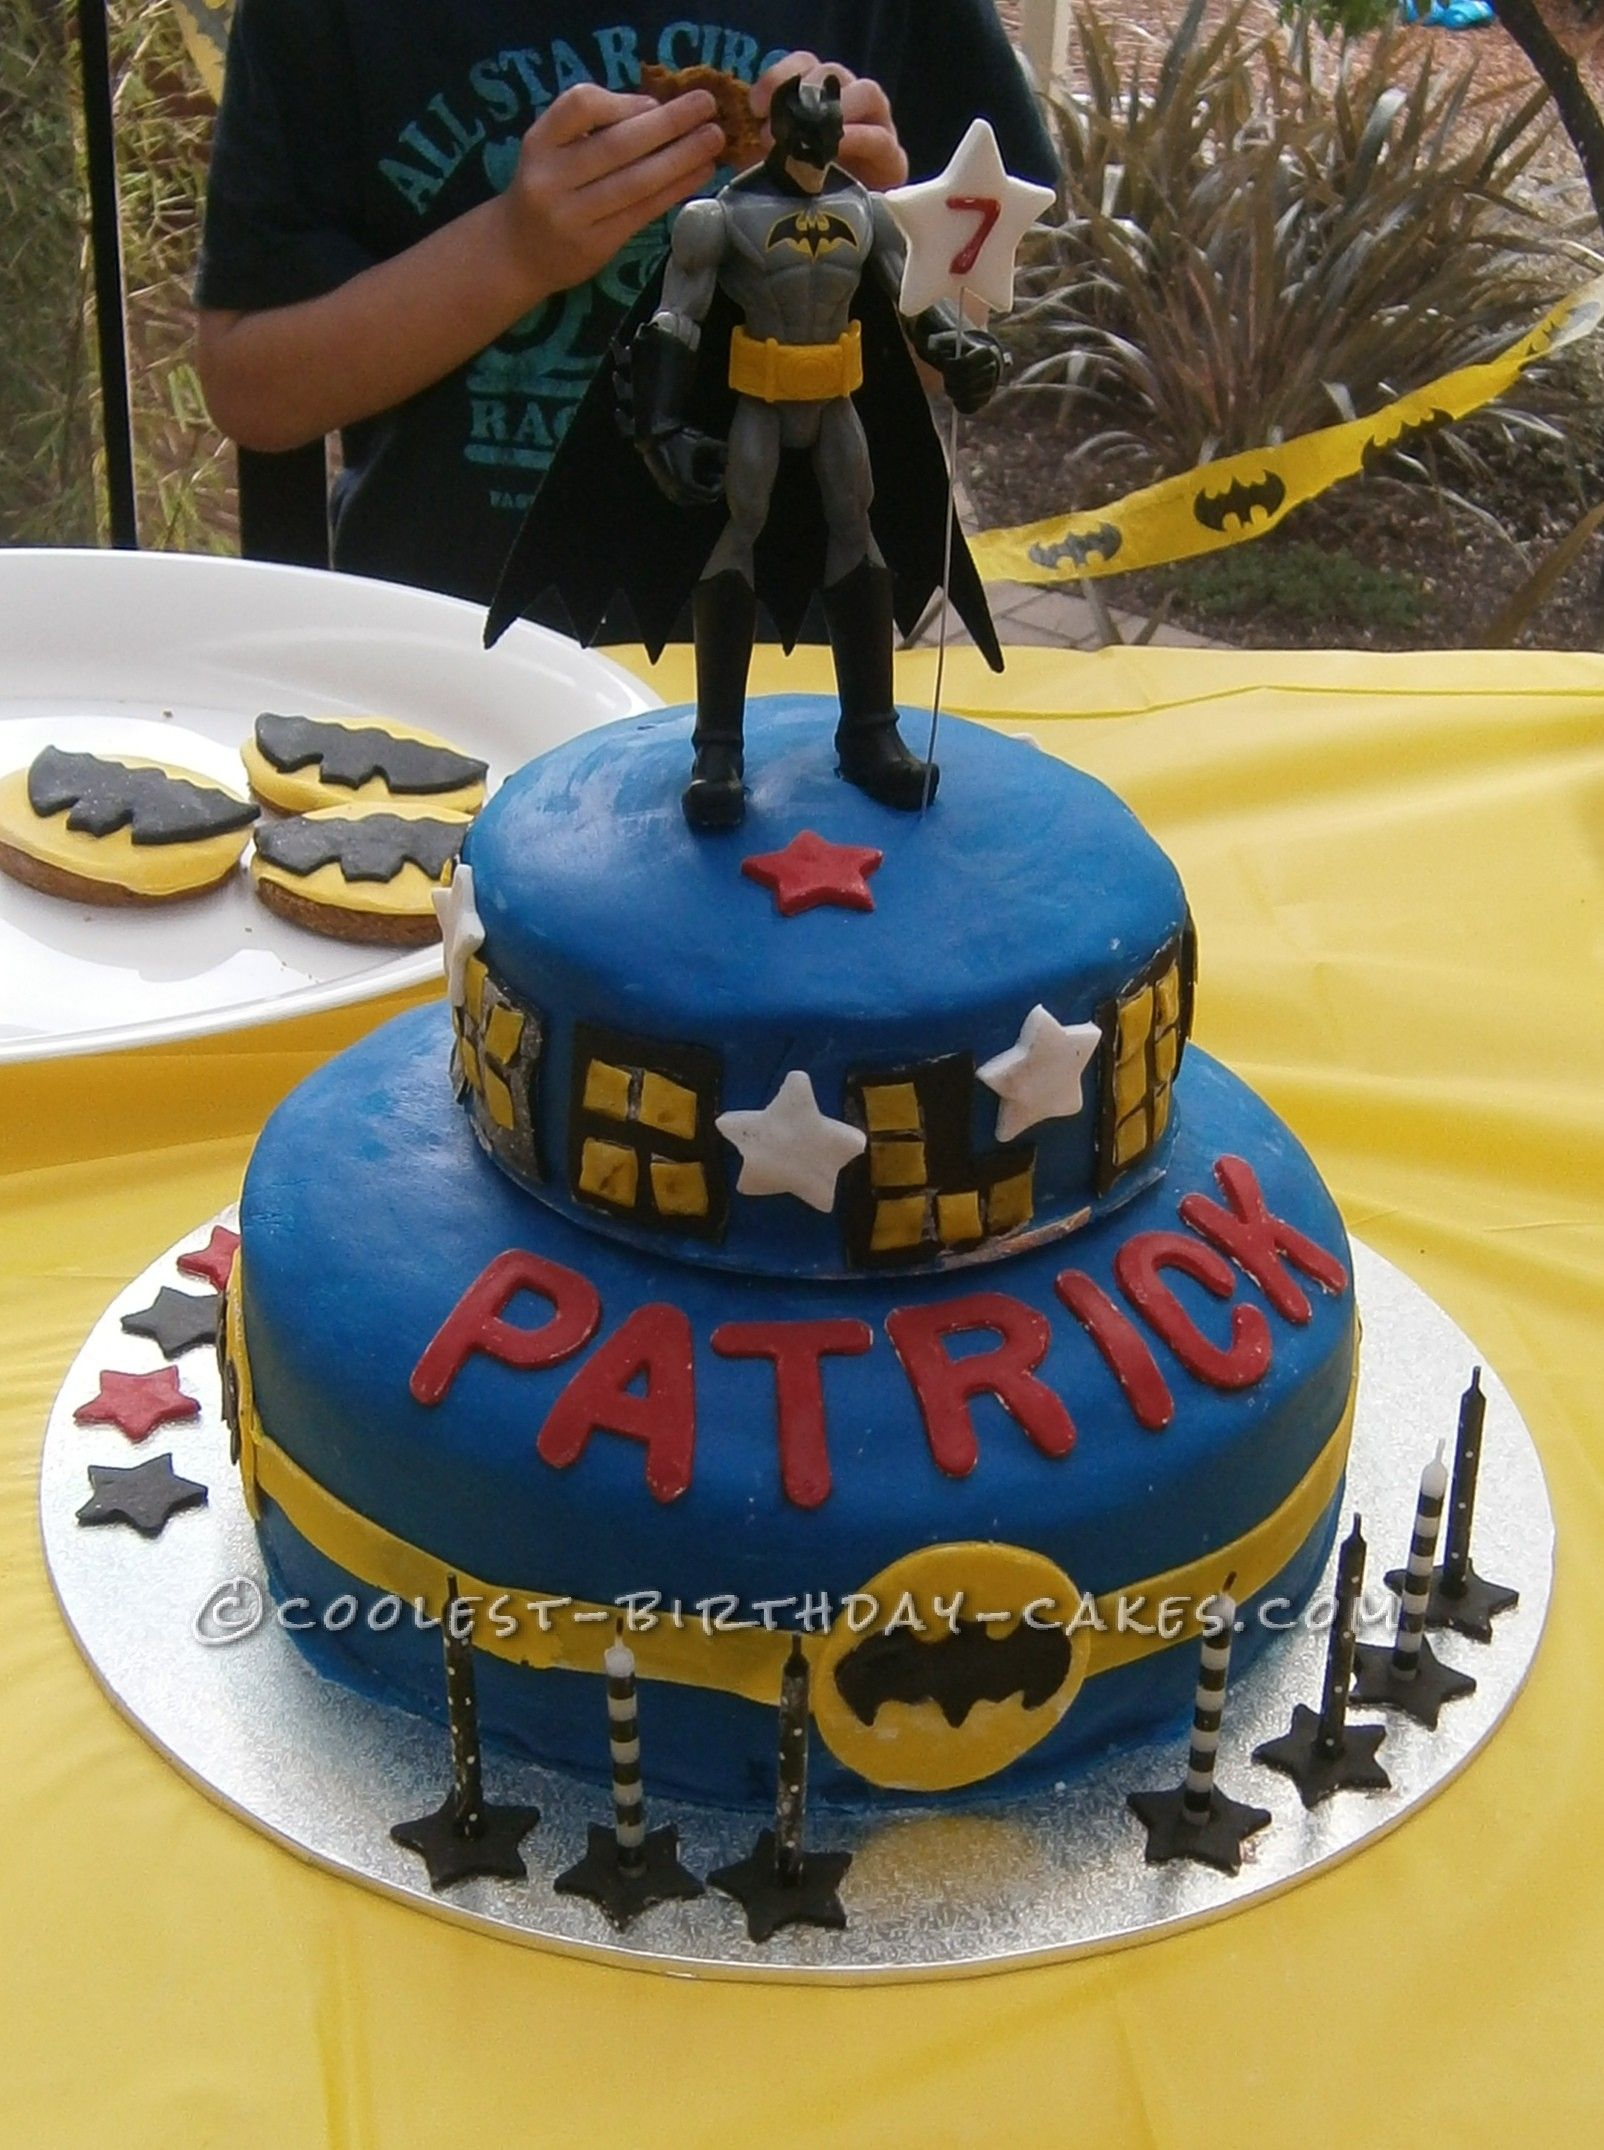 Coolest Batman Cake For 7 Year Old Boy This Website Is The Pinterest Of Birthday Ideas